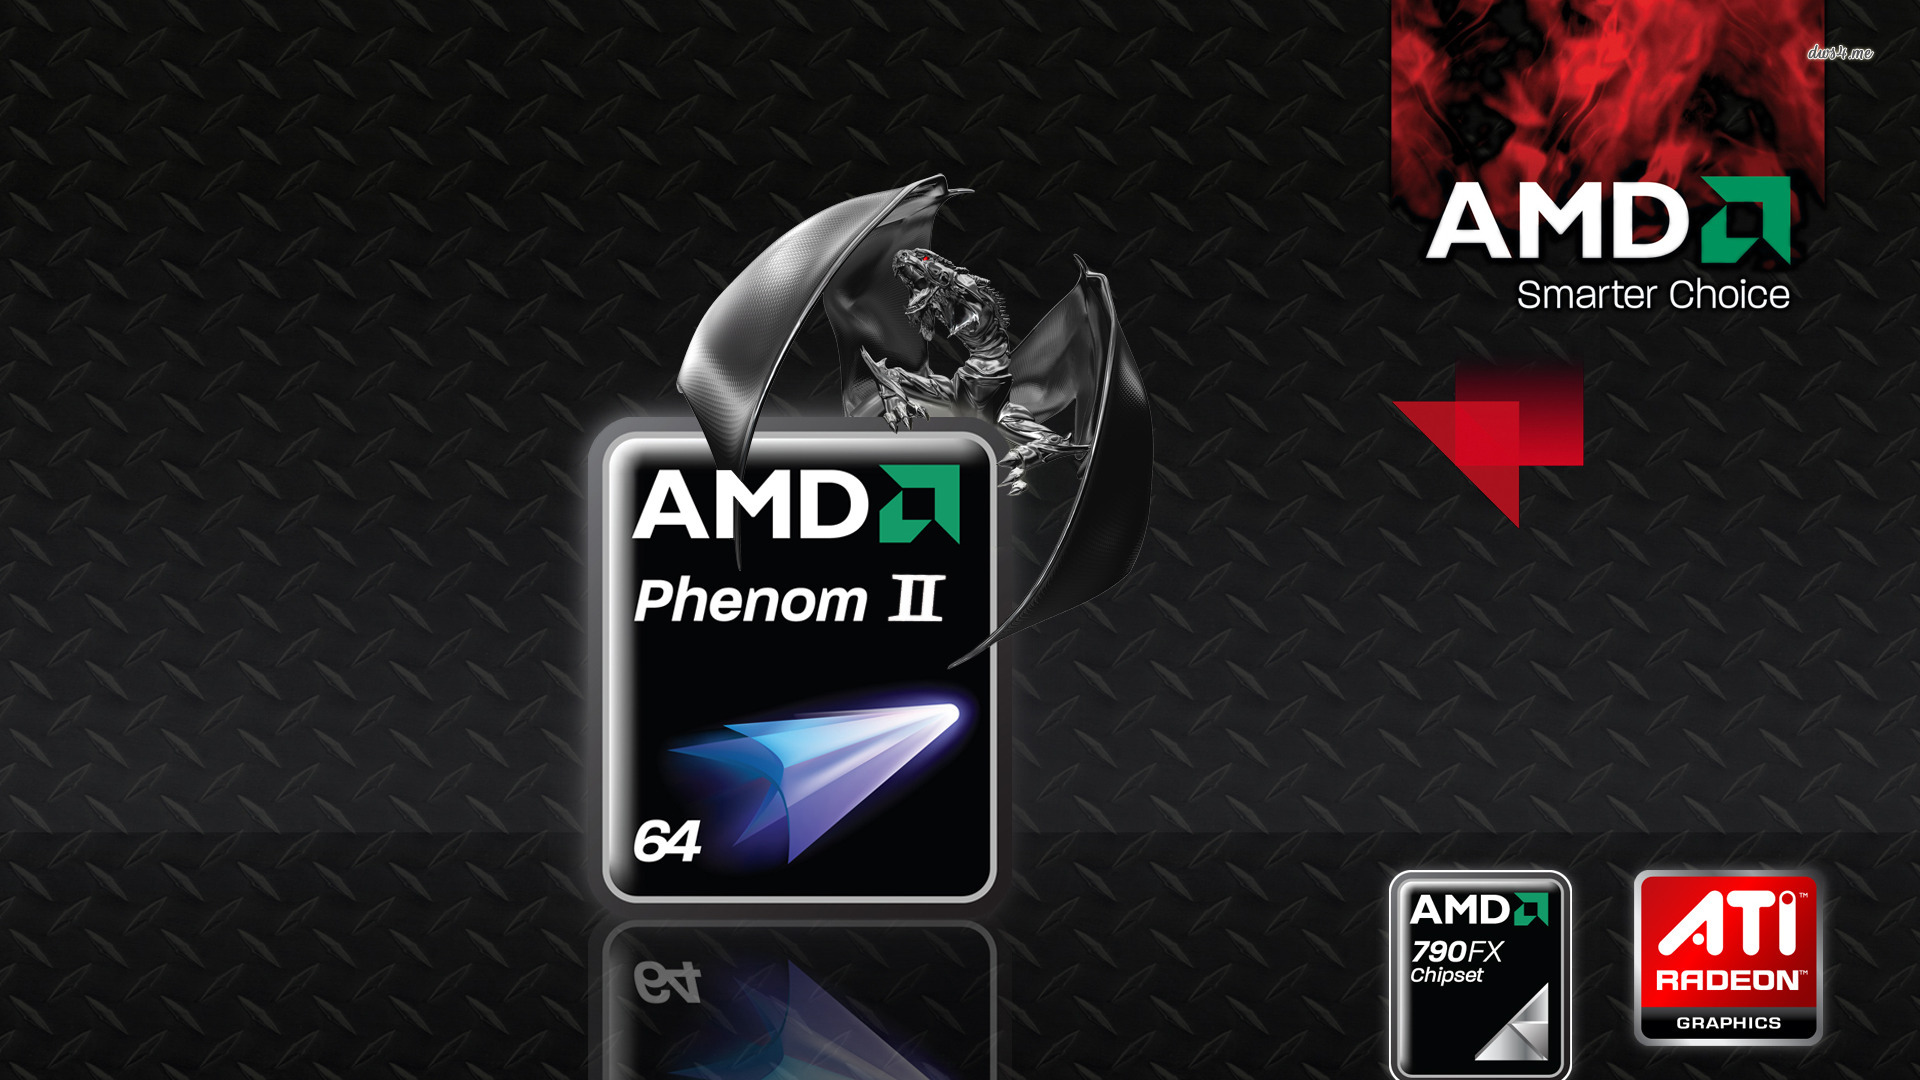 AMD Phenom wallpaper   Computer wallpapers   976 1920x1080